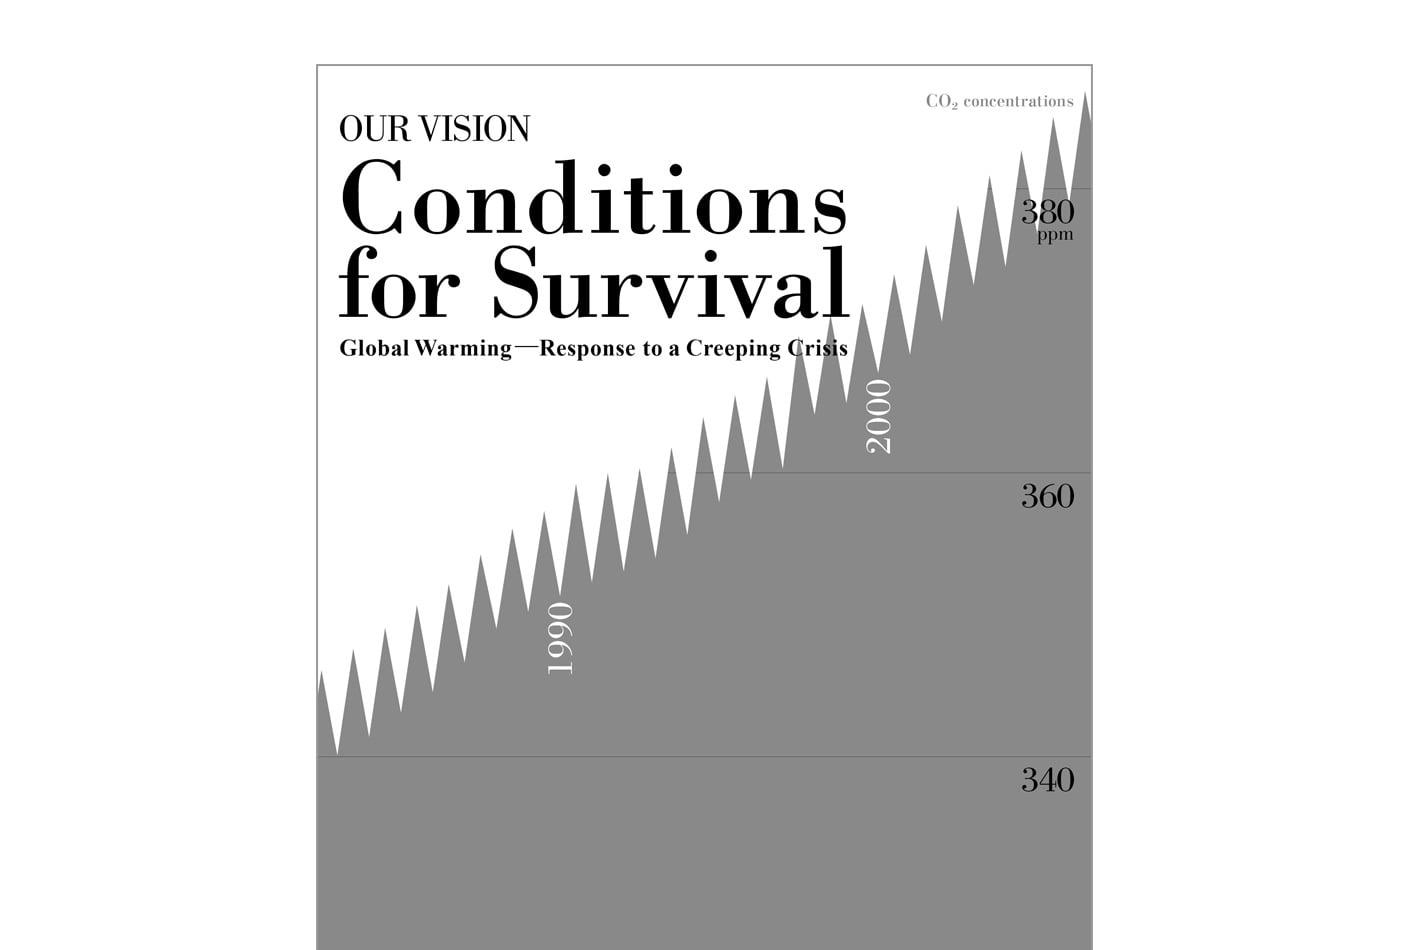 Our Vision: Conditions for Survival